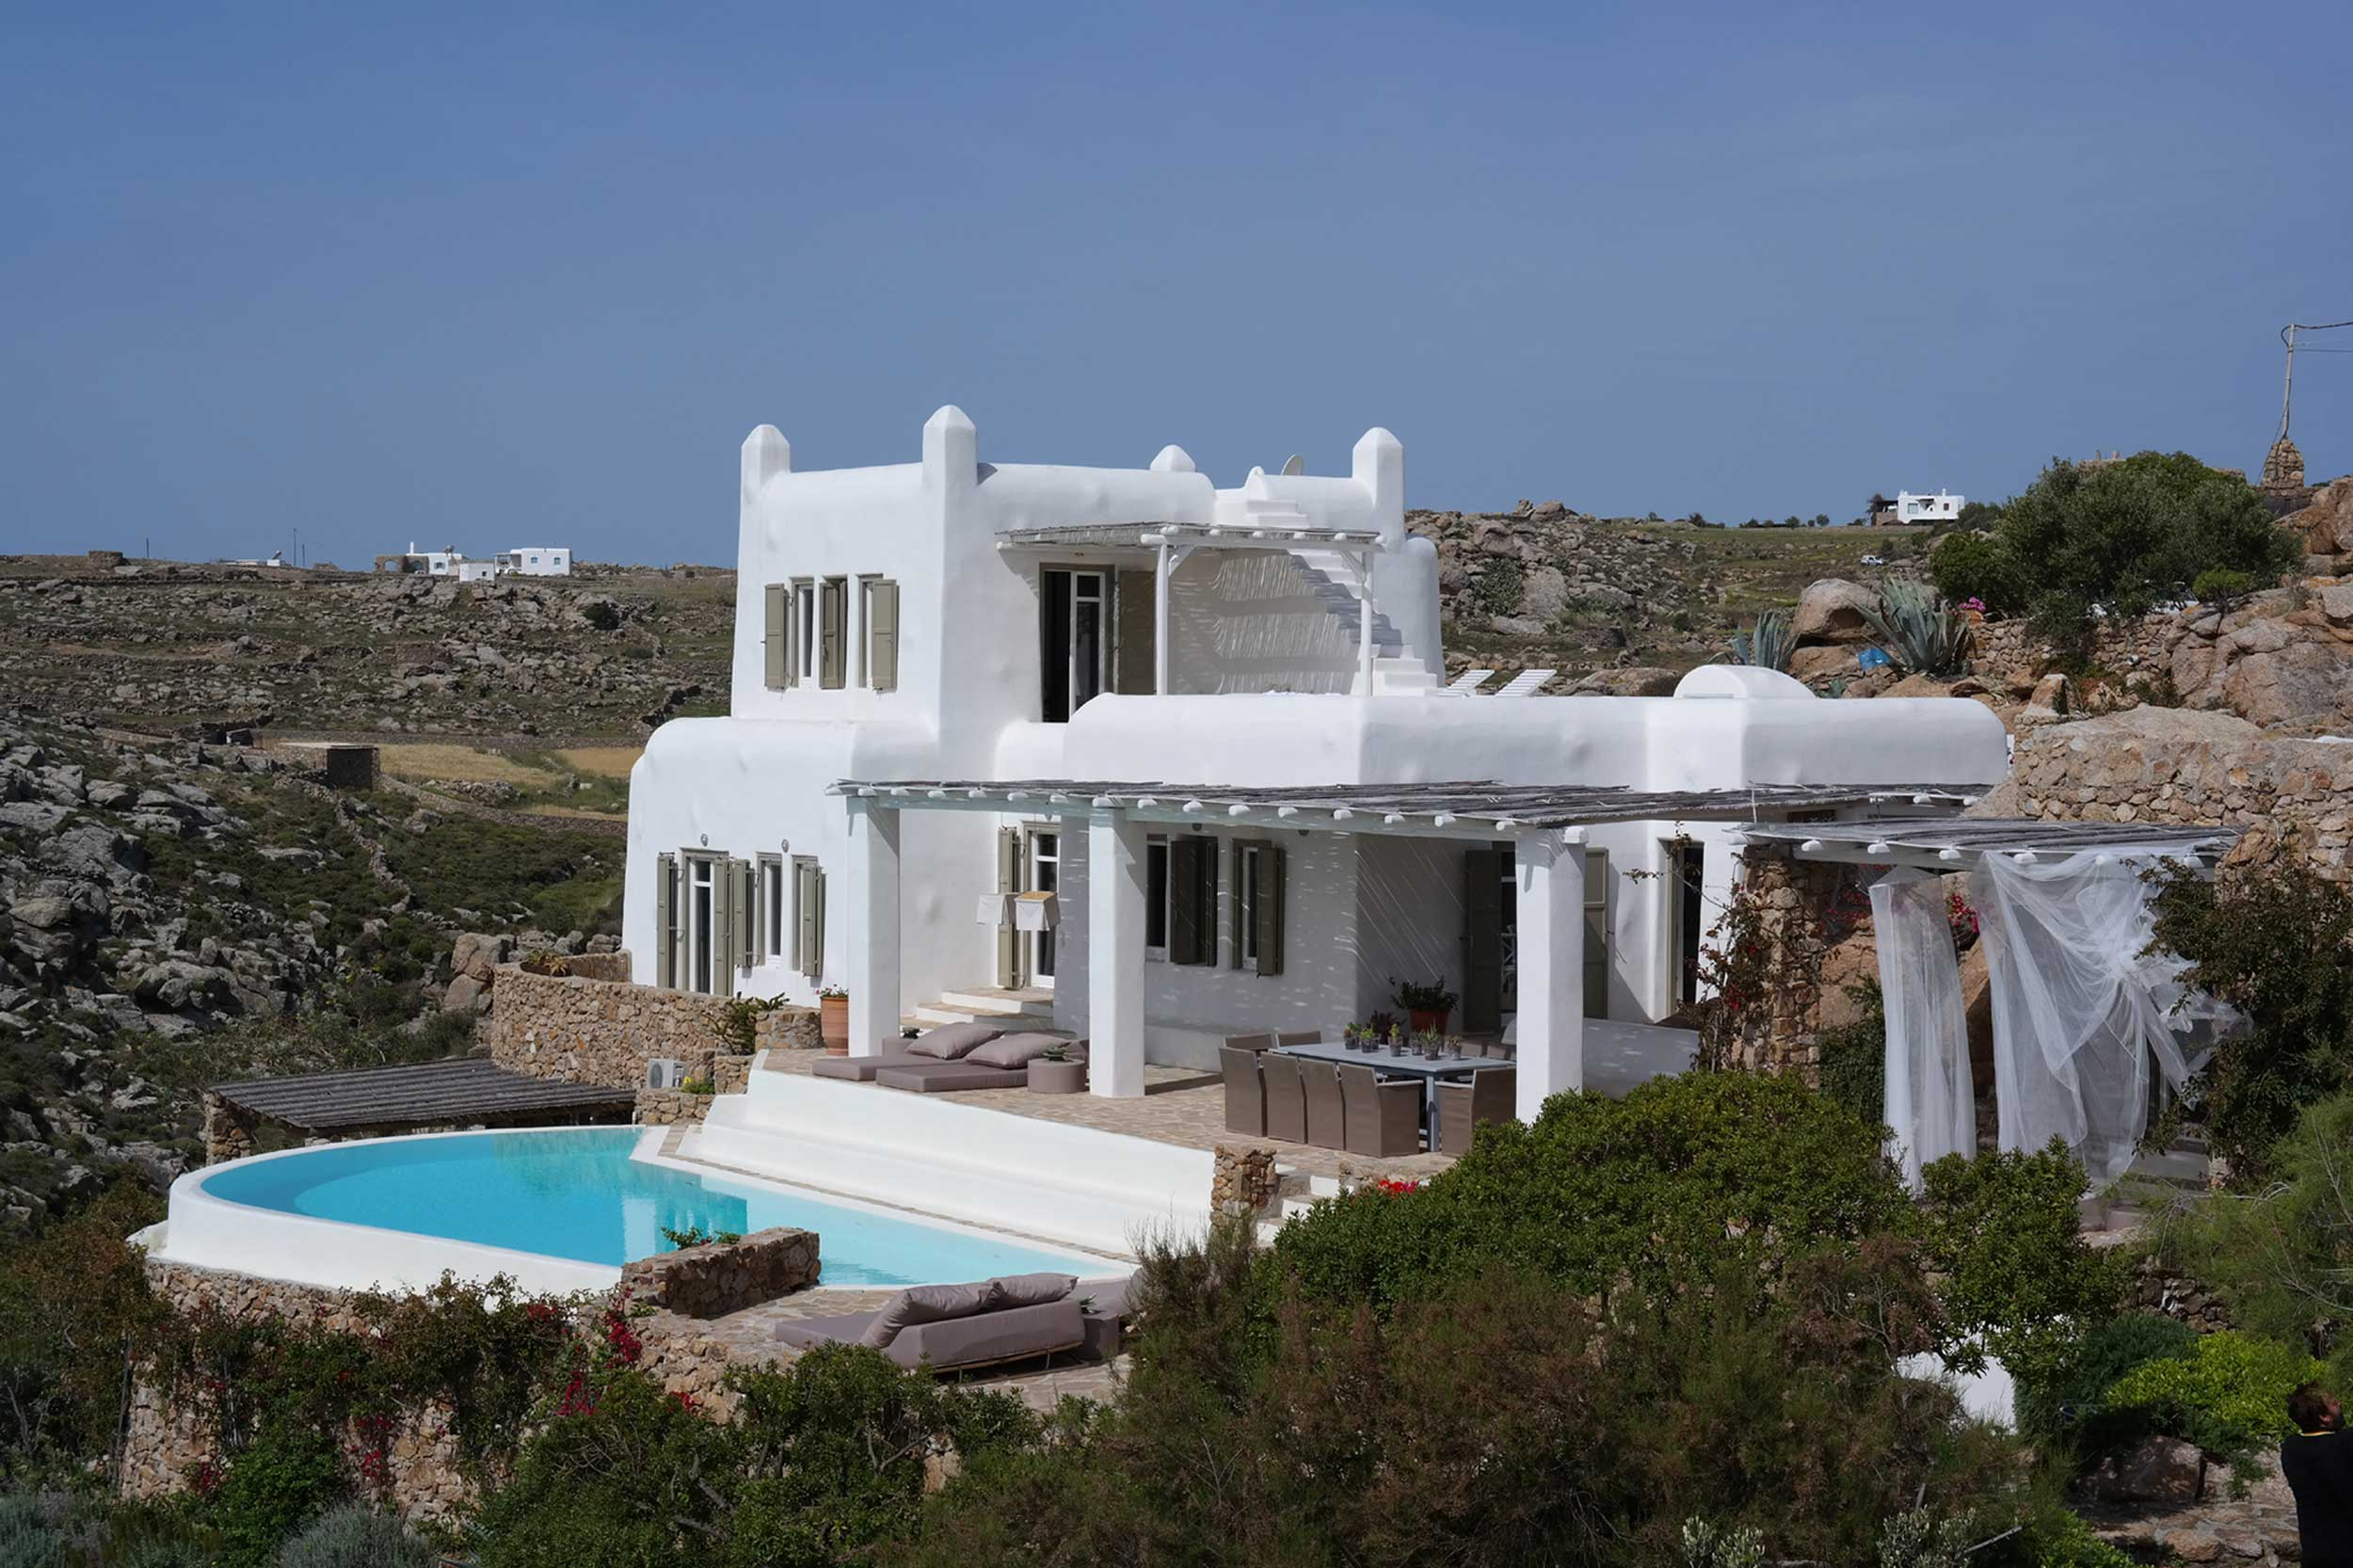 Perched on a hill above the famous southern beach of Agrari, this elegant villa exudes luxury and warmth, and is only a short stroll from white sand and crystal clear waters.